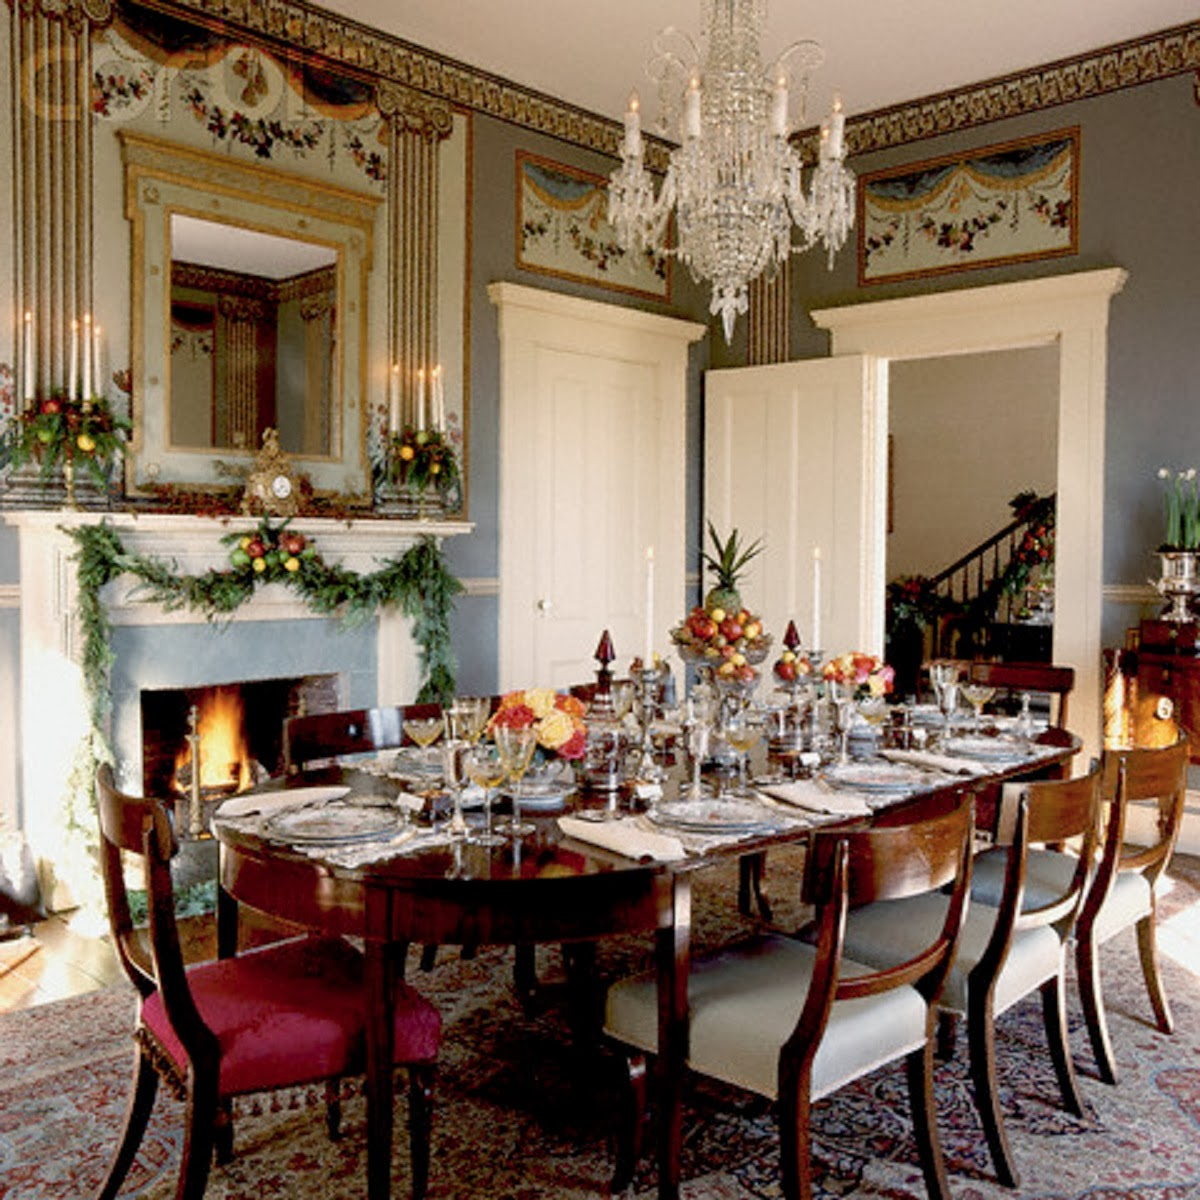 Decorating Ideas > Dining Room Table Christmas Decoration Ideas ~ 083420_Christmas Decorating Ideas Dining Room Table